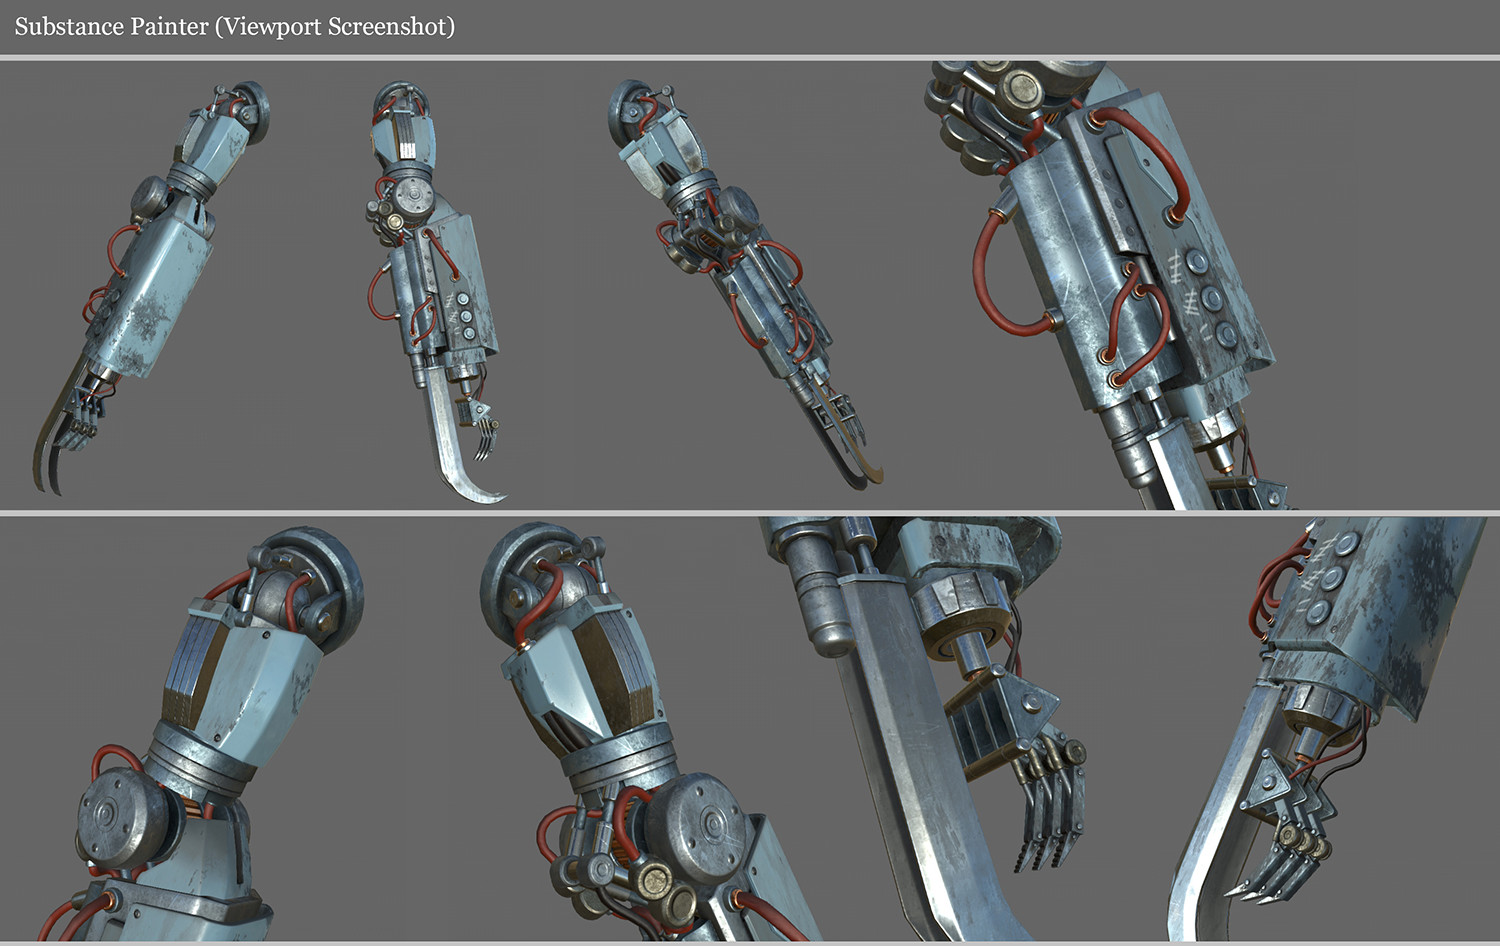 RoboArm Substance Painter